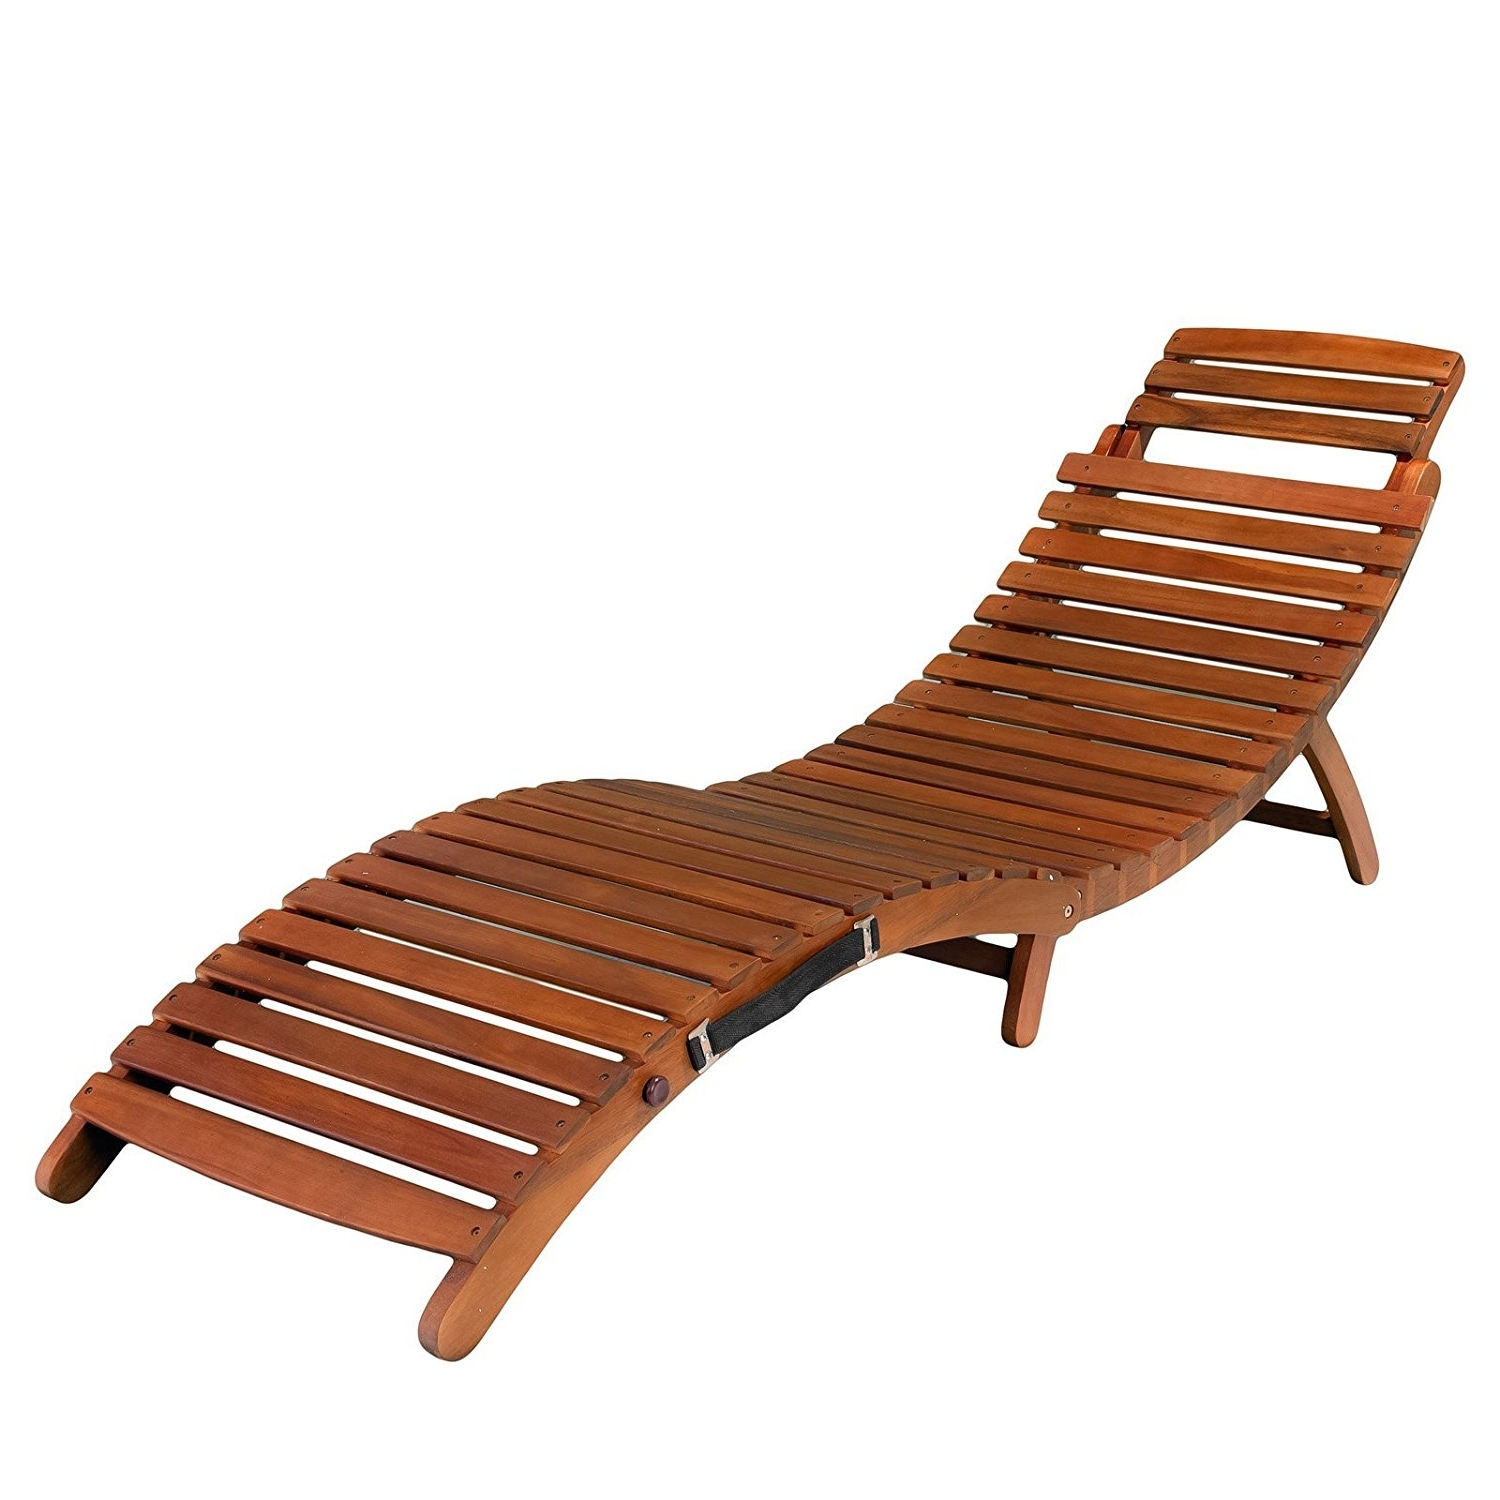 Outdoor Folding Chaise Lounges Regarding Most Current Amazon: Lahaina Outdoor Chaise Lounge: Garden & Outdoor (View 8 of 15)